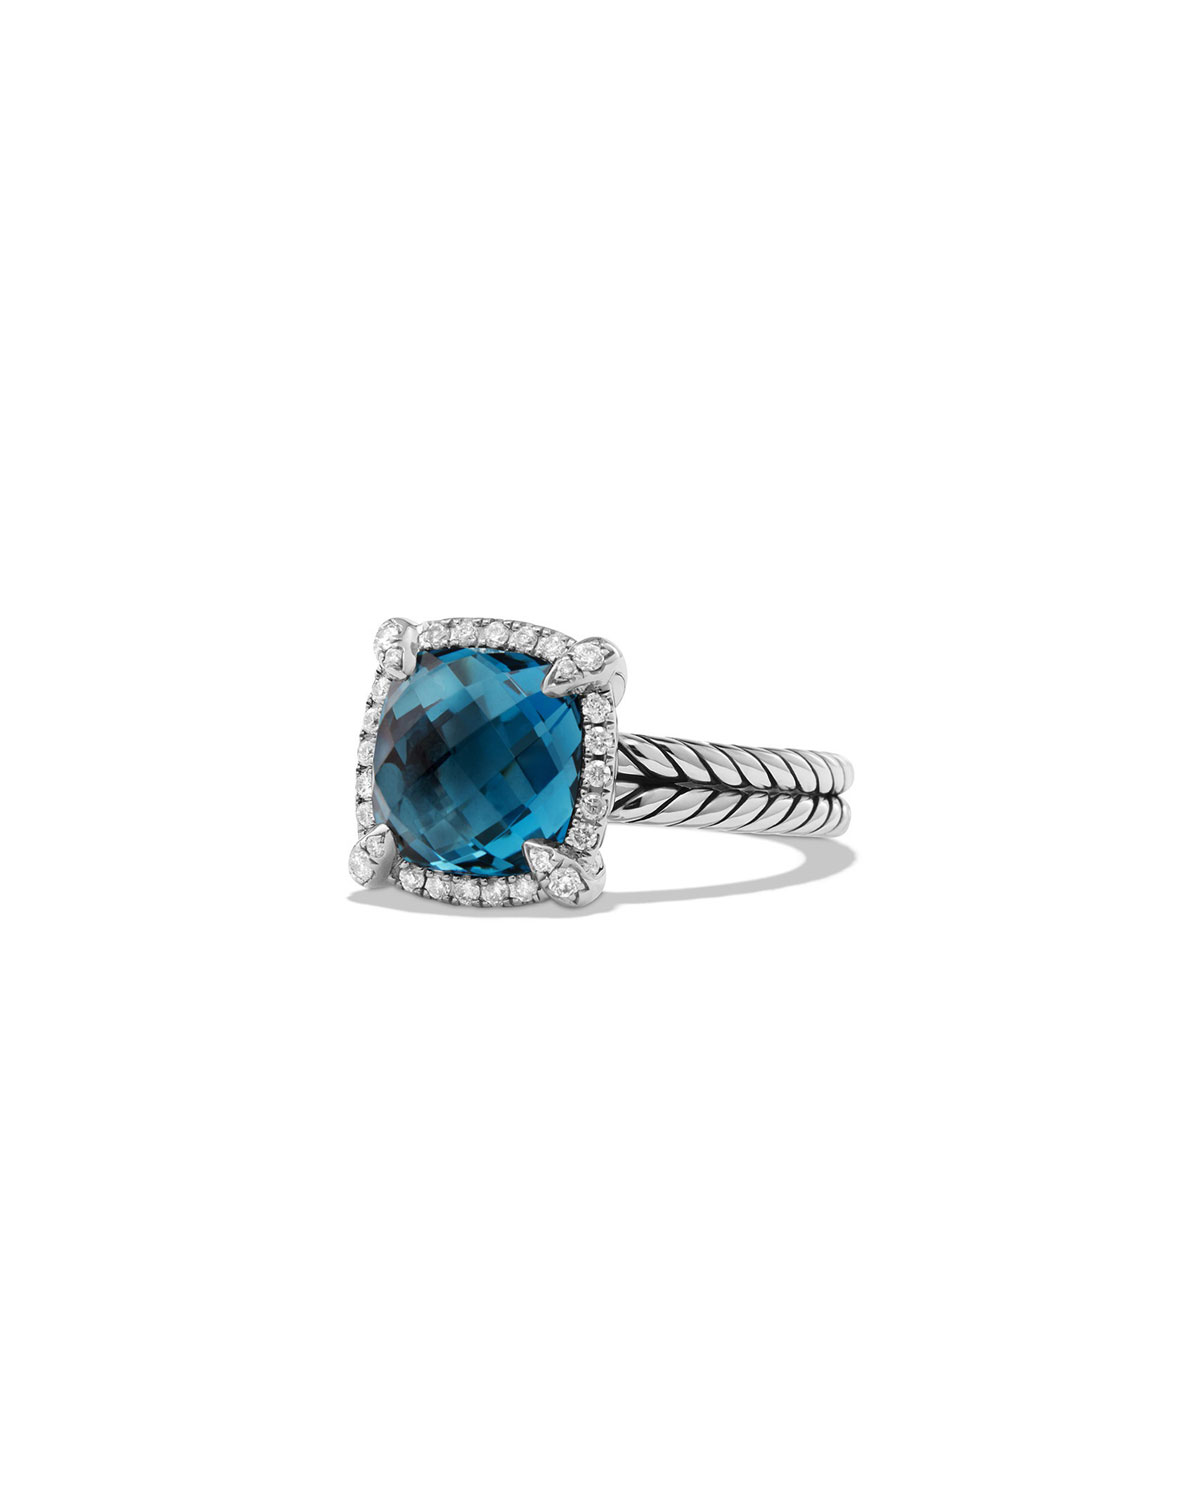 David Yurman 9mm Châtelaine Ring with Diamonds in Blue Topaz